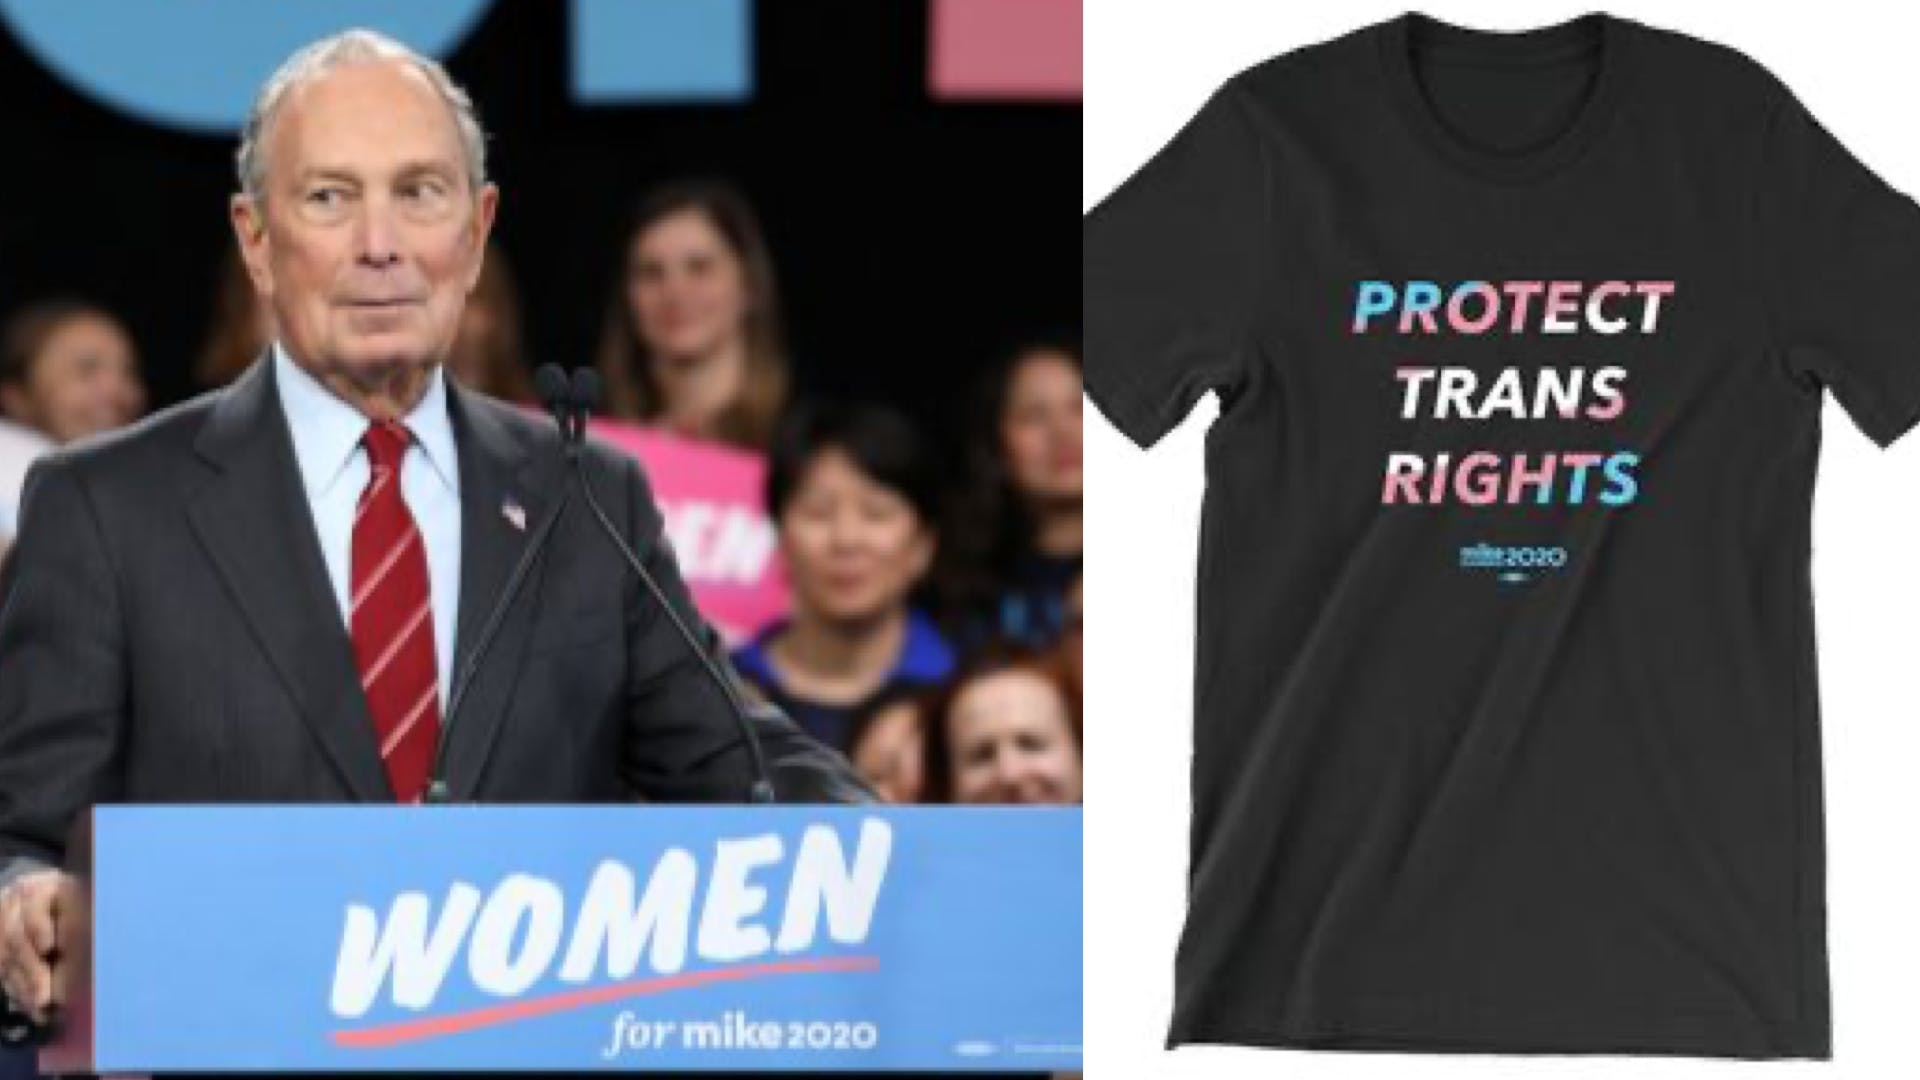 Bloomberg hasn't apologize for anti-trans past but is selling a 'protect trans rights' tee